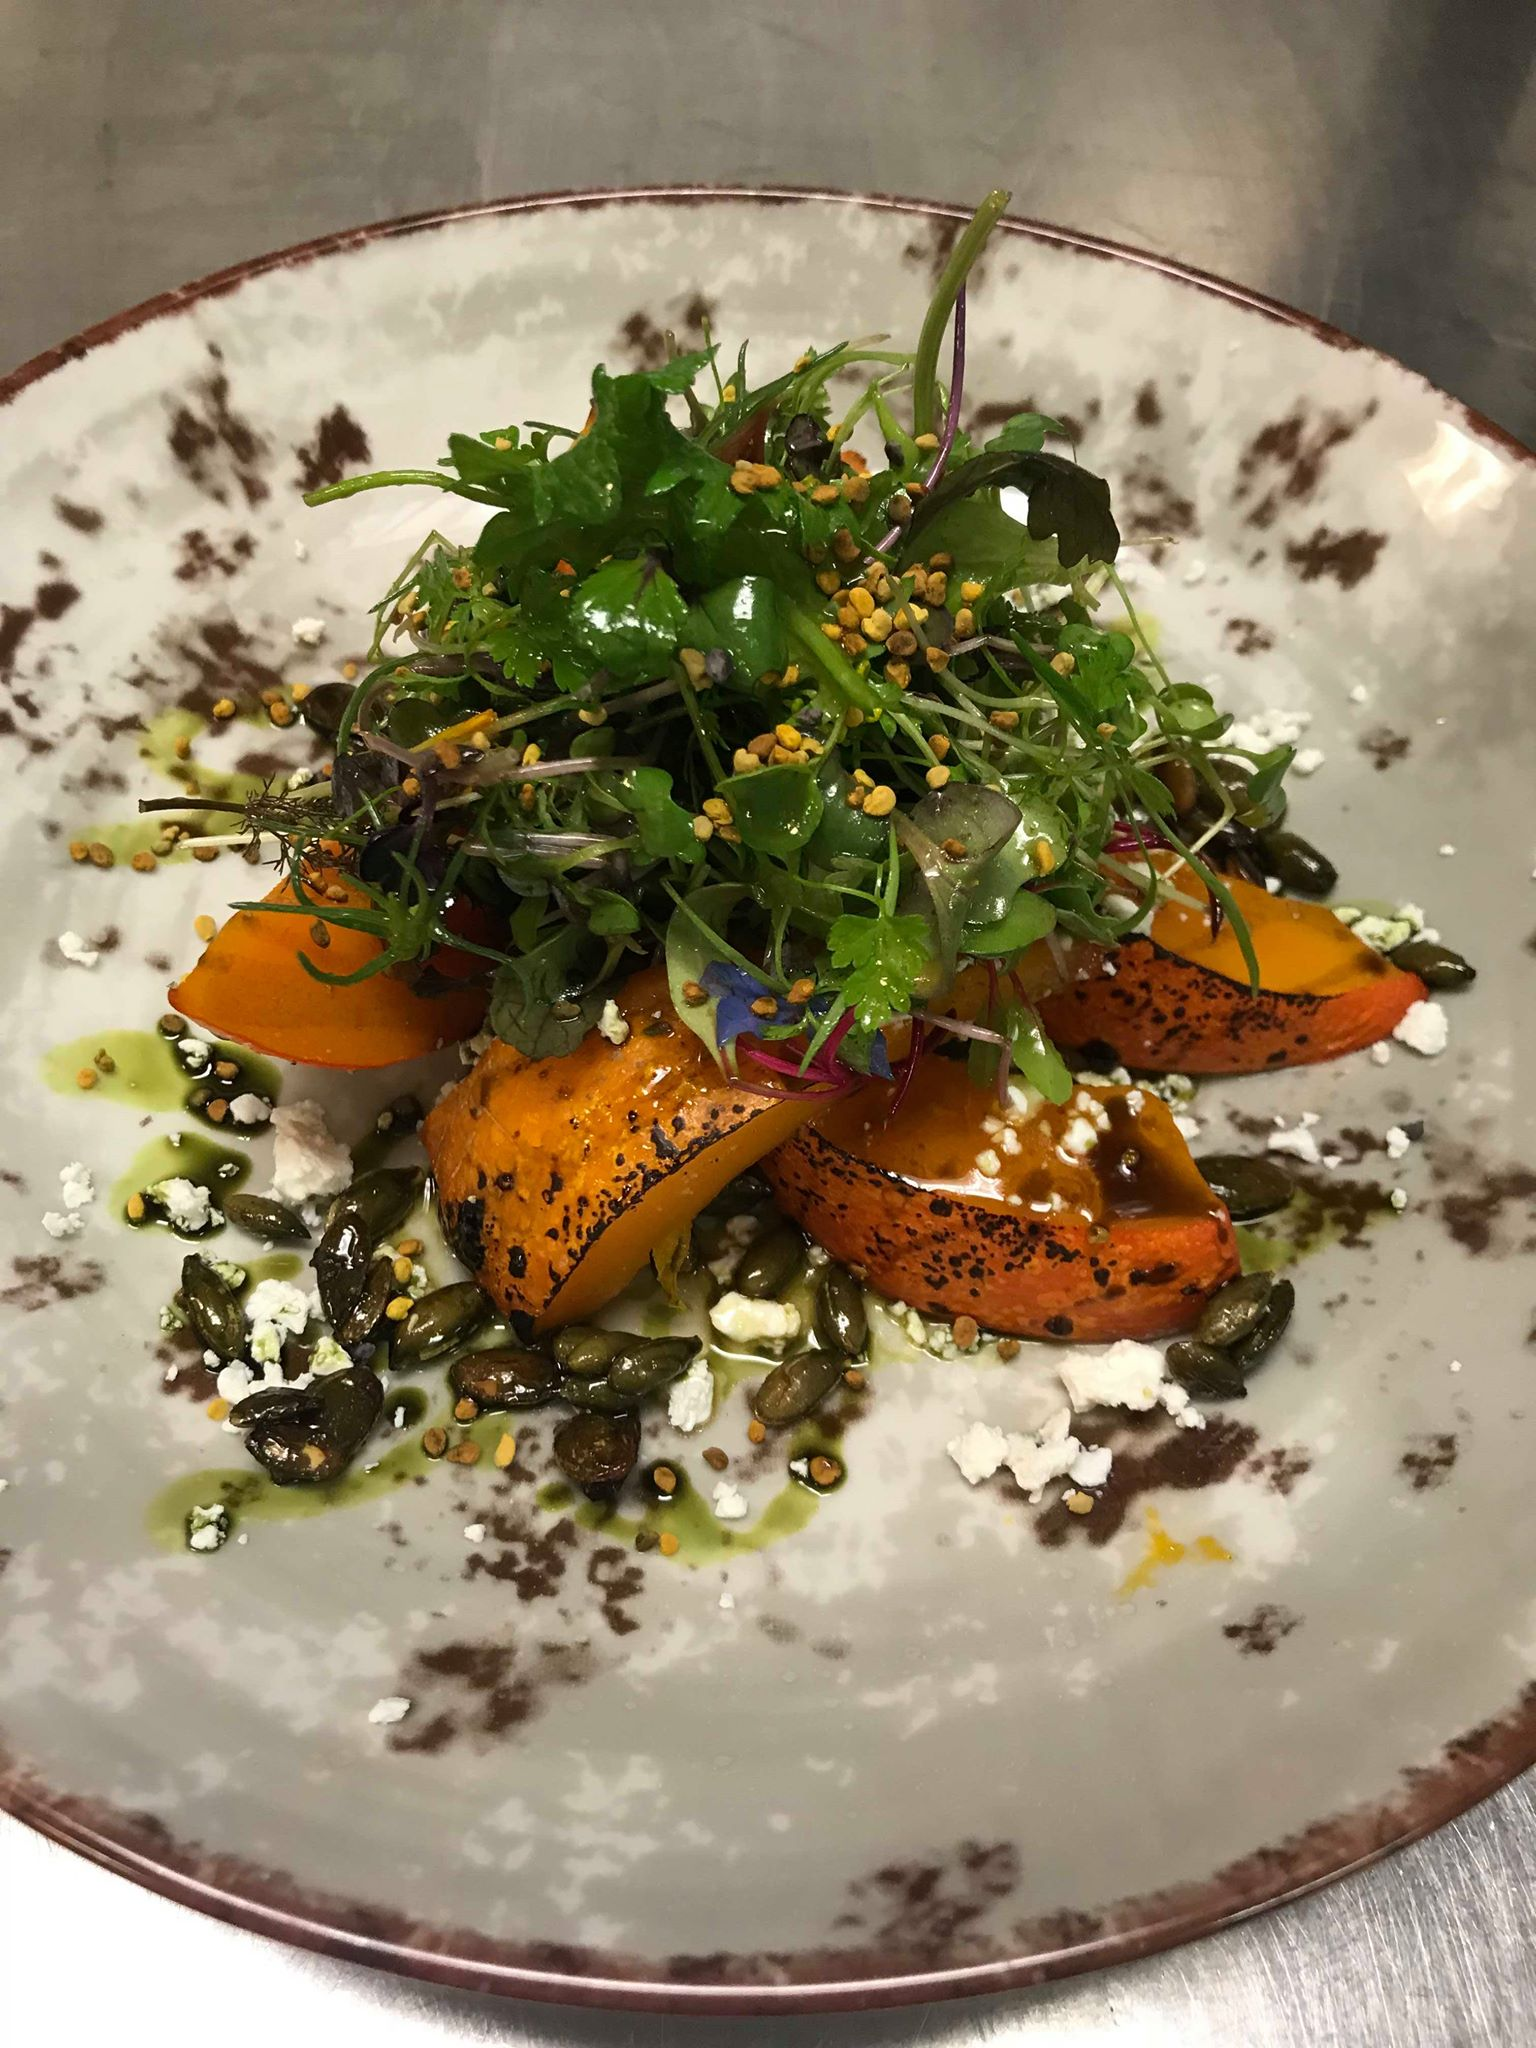 Pumpkin glazed in homemade dandelion honey, pumpkin seeds, pollen, micro herbs & dill oil